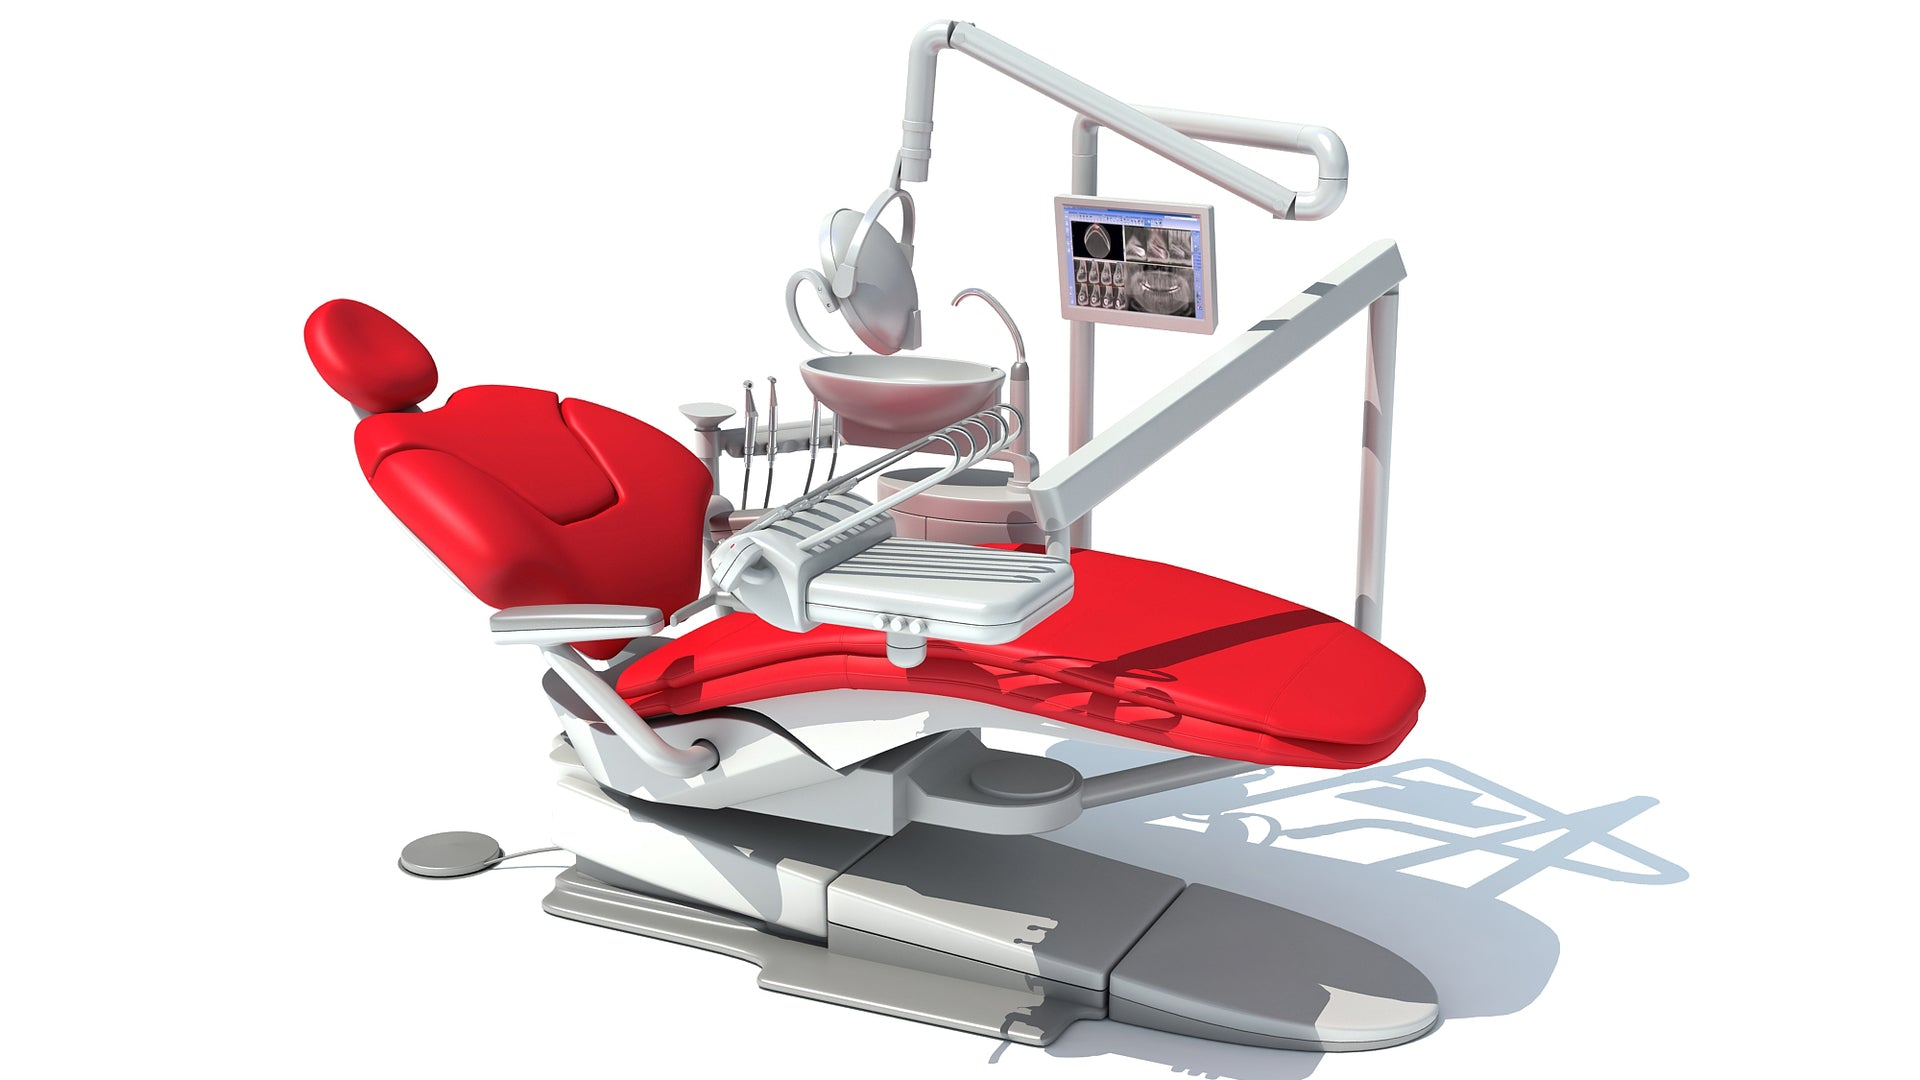 Dental Treatment Unit 3D Model